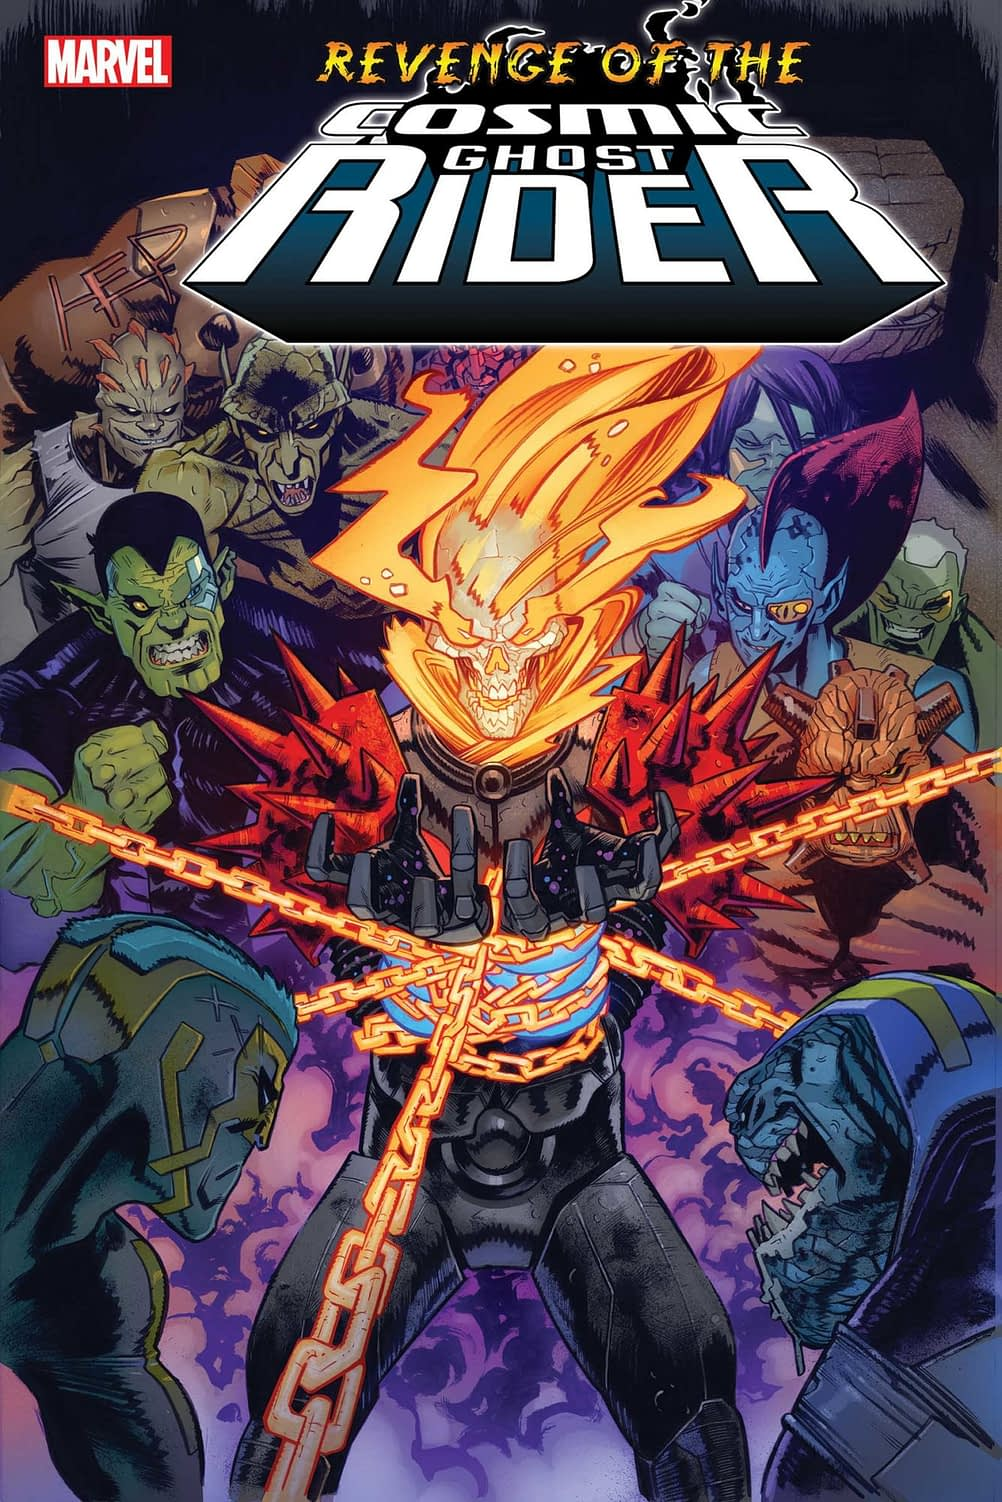 Marvel Puts the Cosmic Ghost Rider in Chains For New Revenge